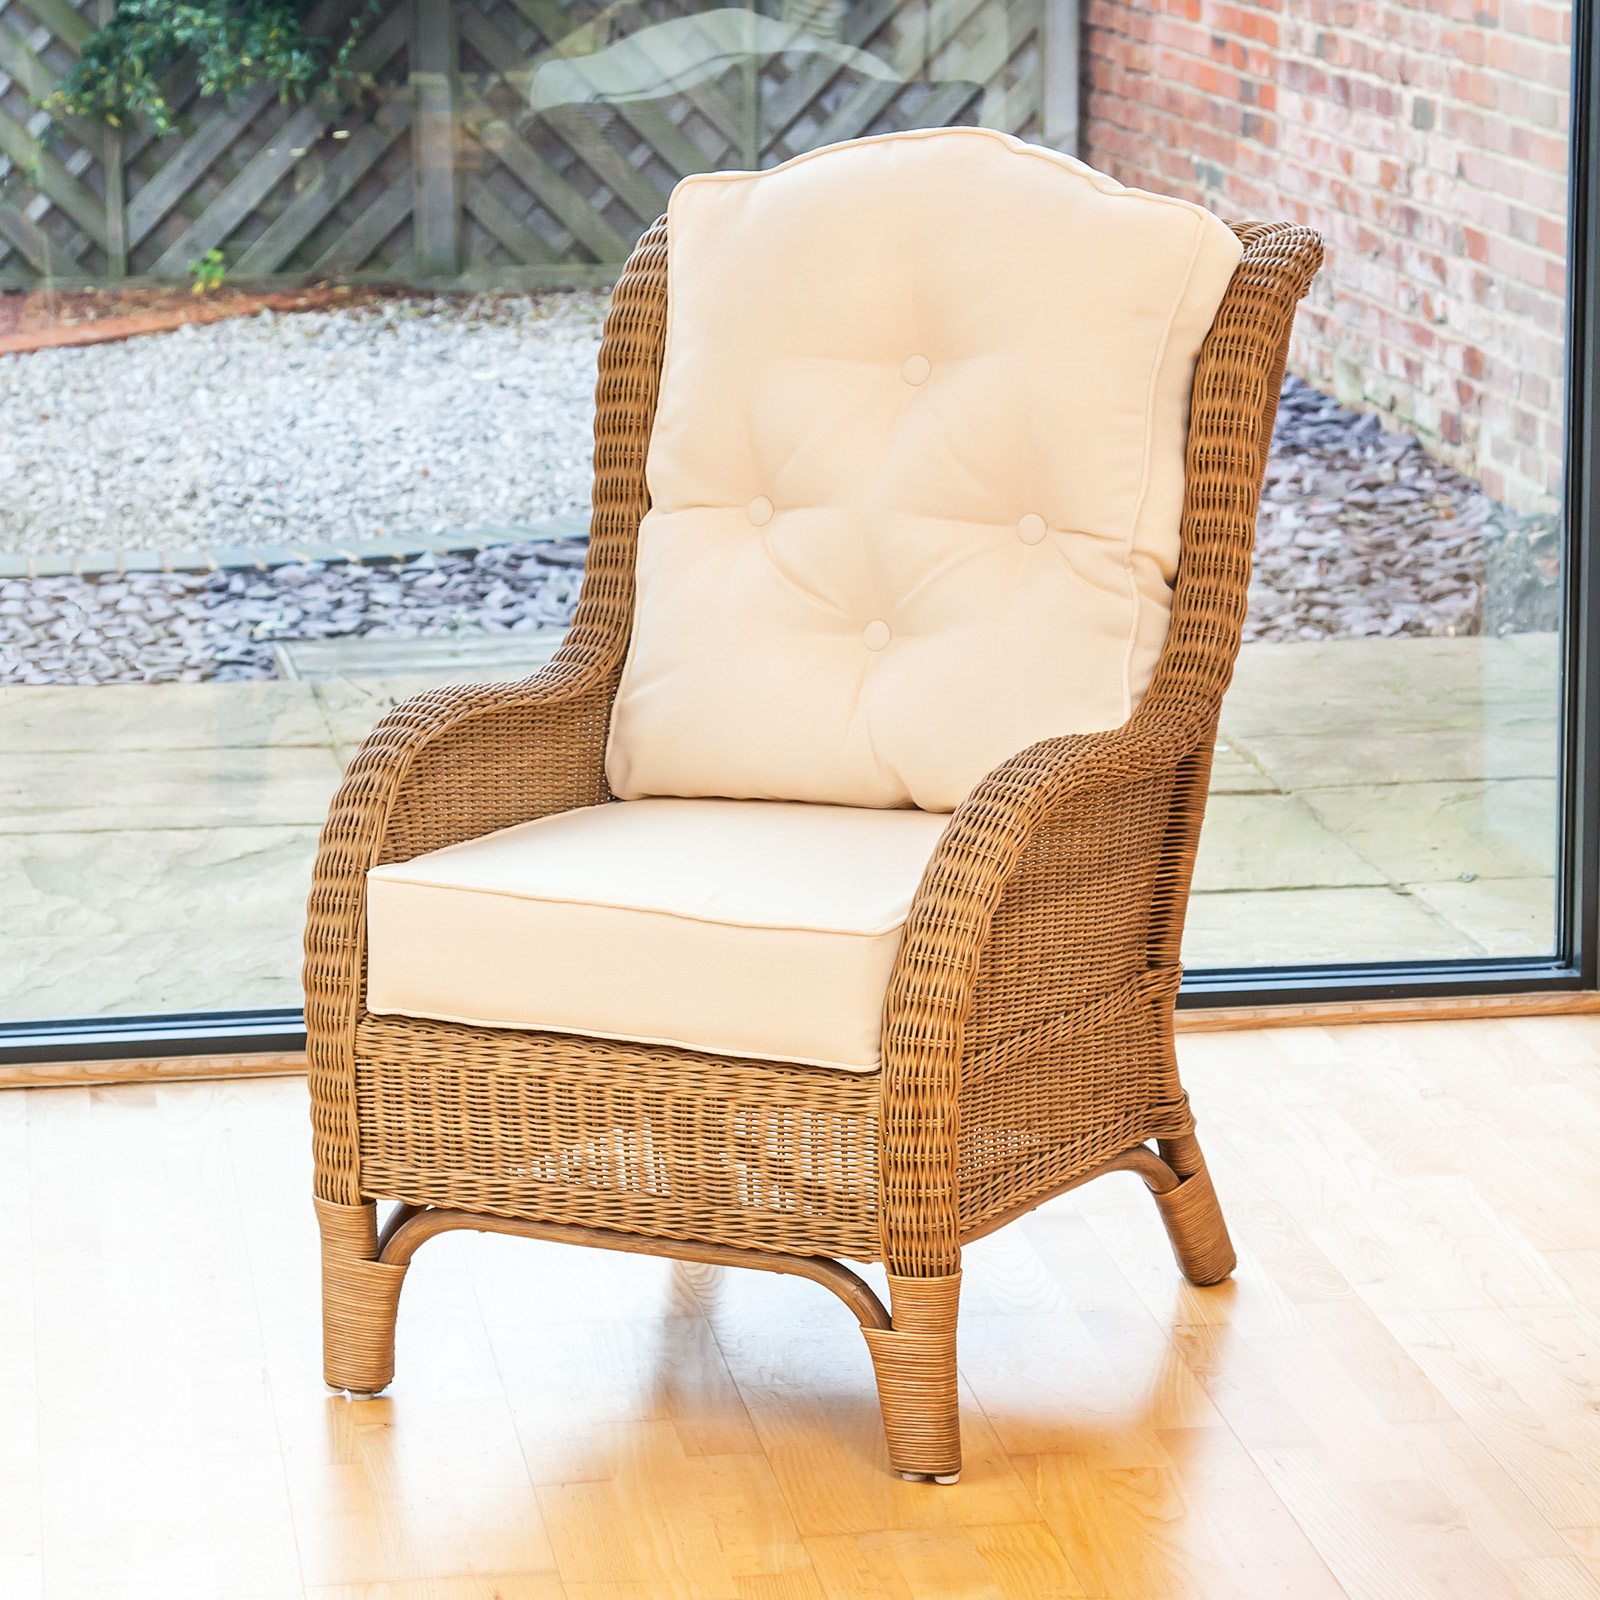 reading chairs uk pattern accent chair denver conservatory rattan choice of